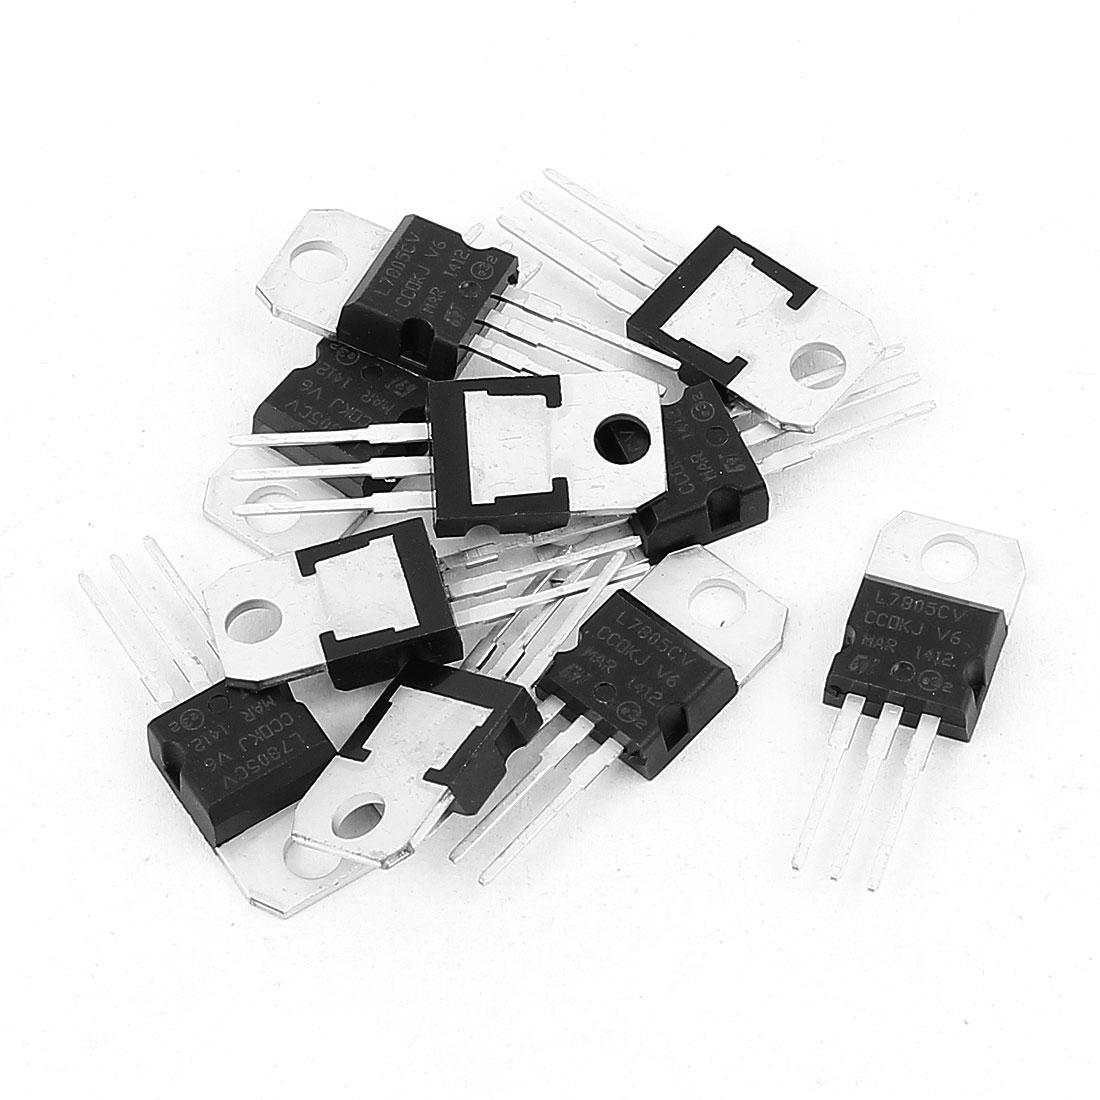 10 Pcs 5V 1.5A 3 Pin Terminals L7805CV Positive Voltage Regulator TO-220